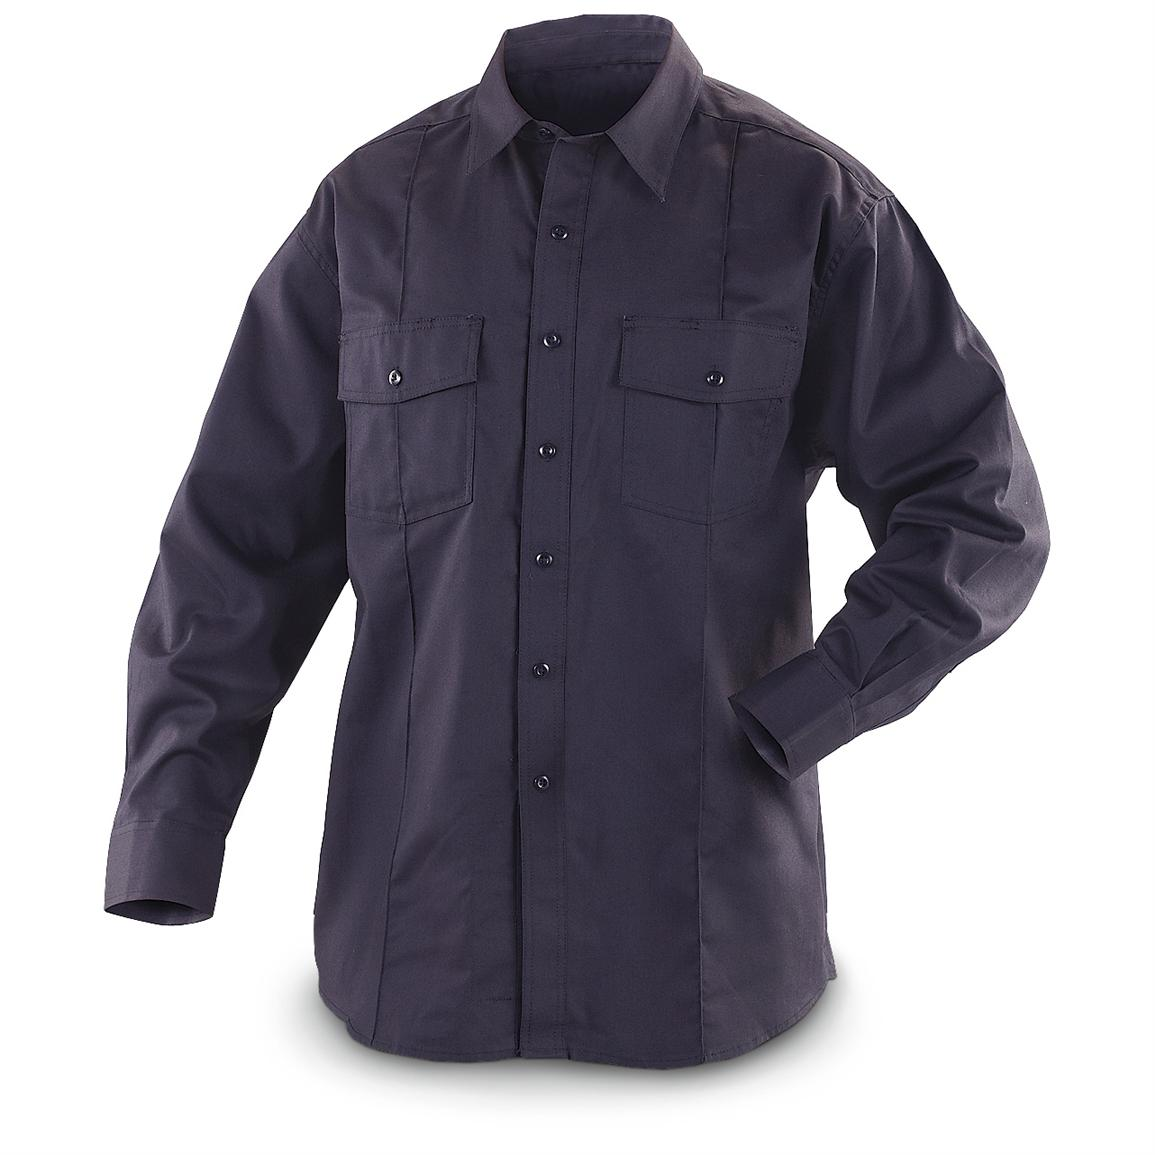 Men's 5.11 Tactical® FR-x3 Long-sleeved Fire-resistant Station Shirt, Fire Navy